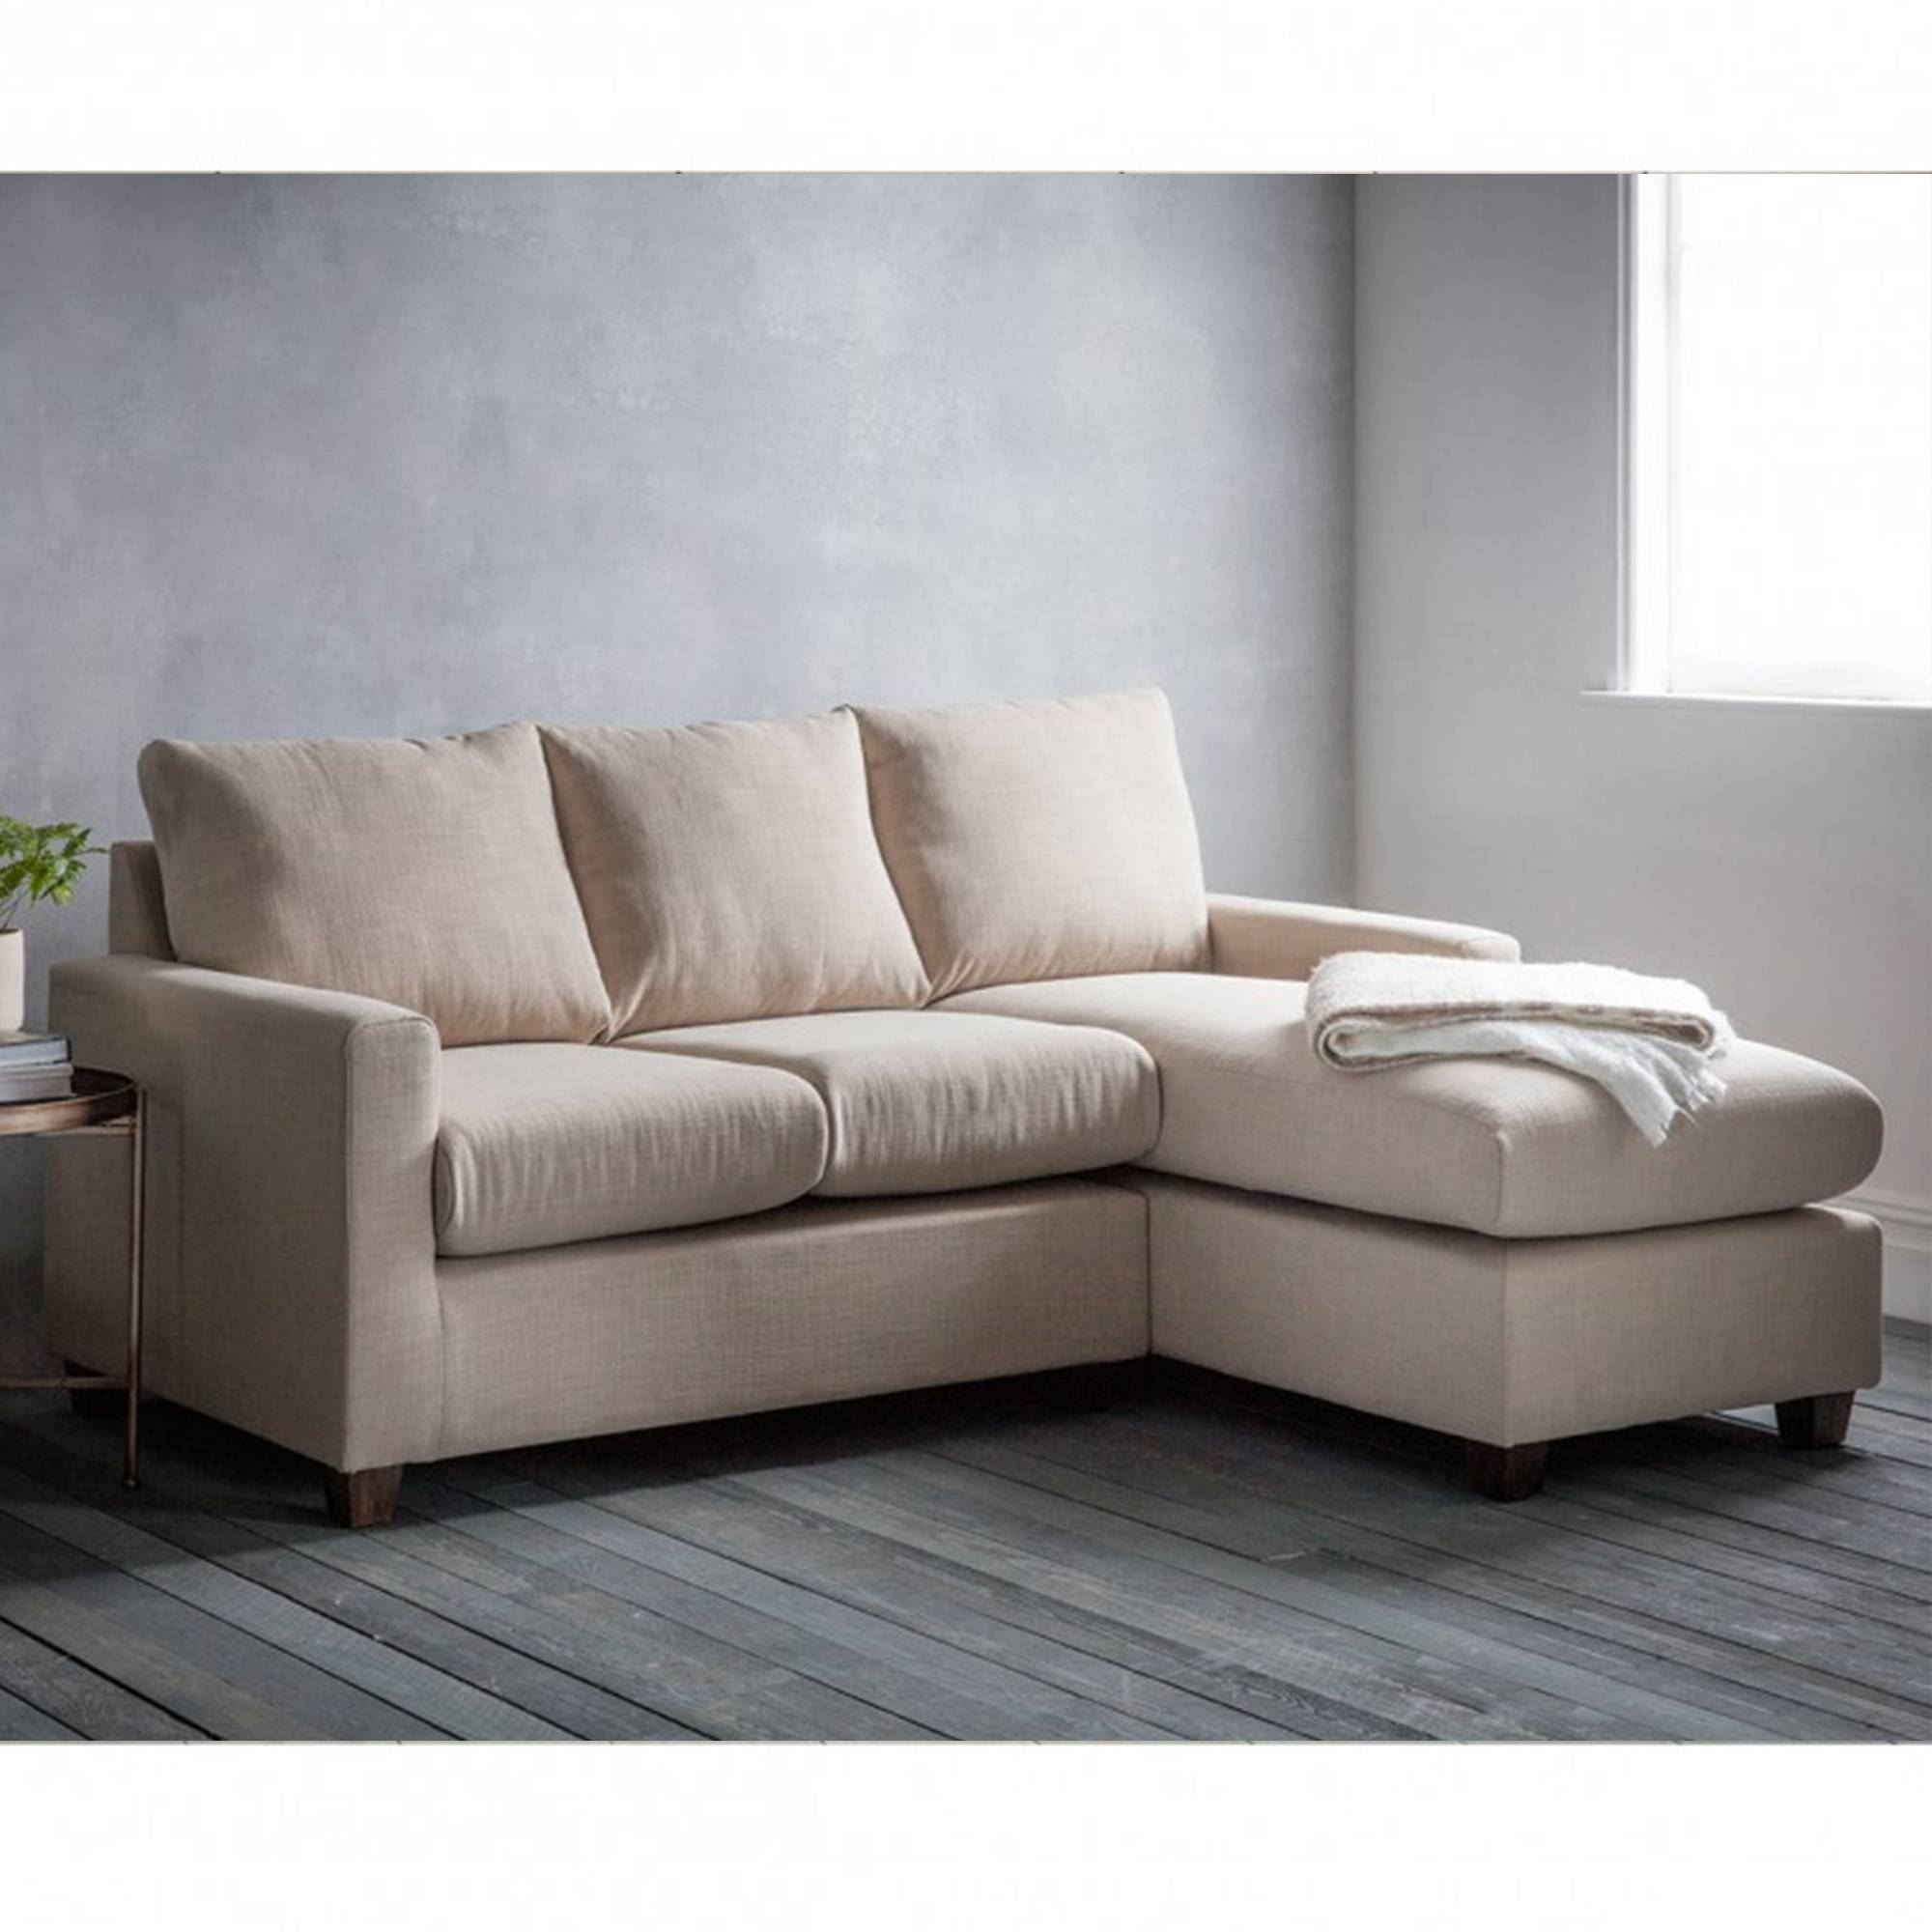 Field Beige Stratford Lh Chaise Sofa | Seating Online From Regarding Stratford Sofas (View 5 of 30)